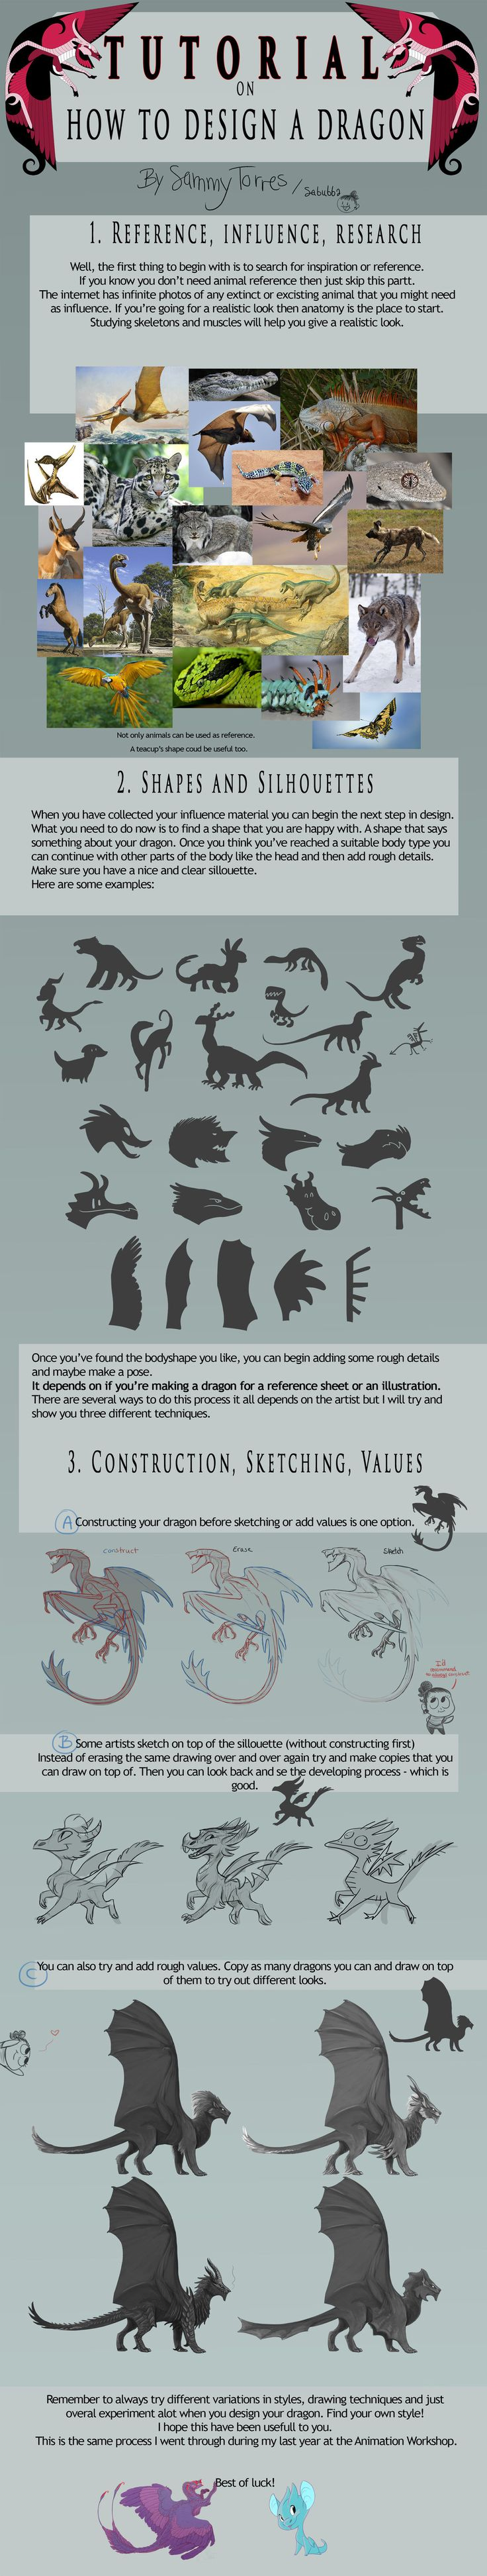 TUTORIAL: How to Design a Dragon by SammyTorres on deviantART